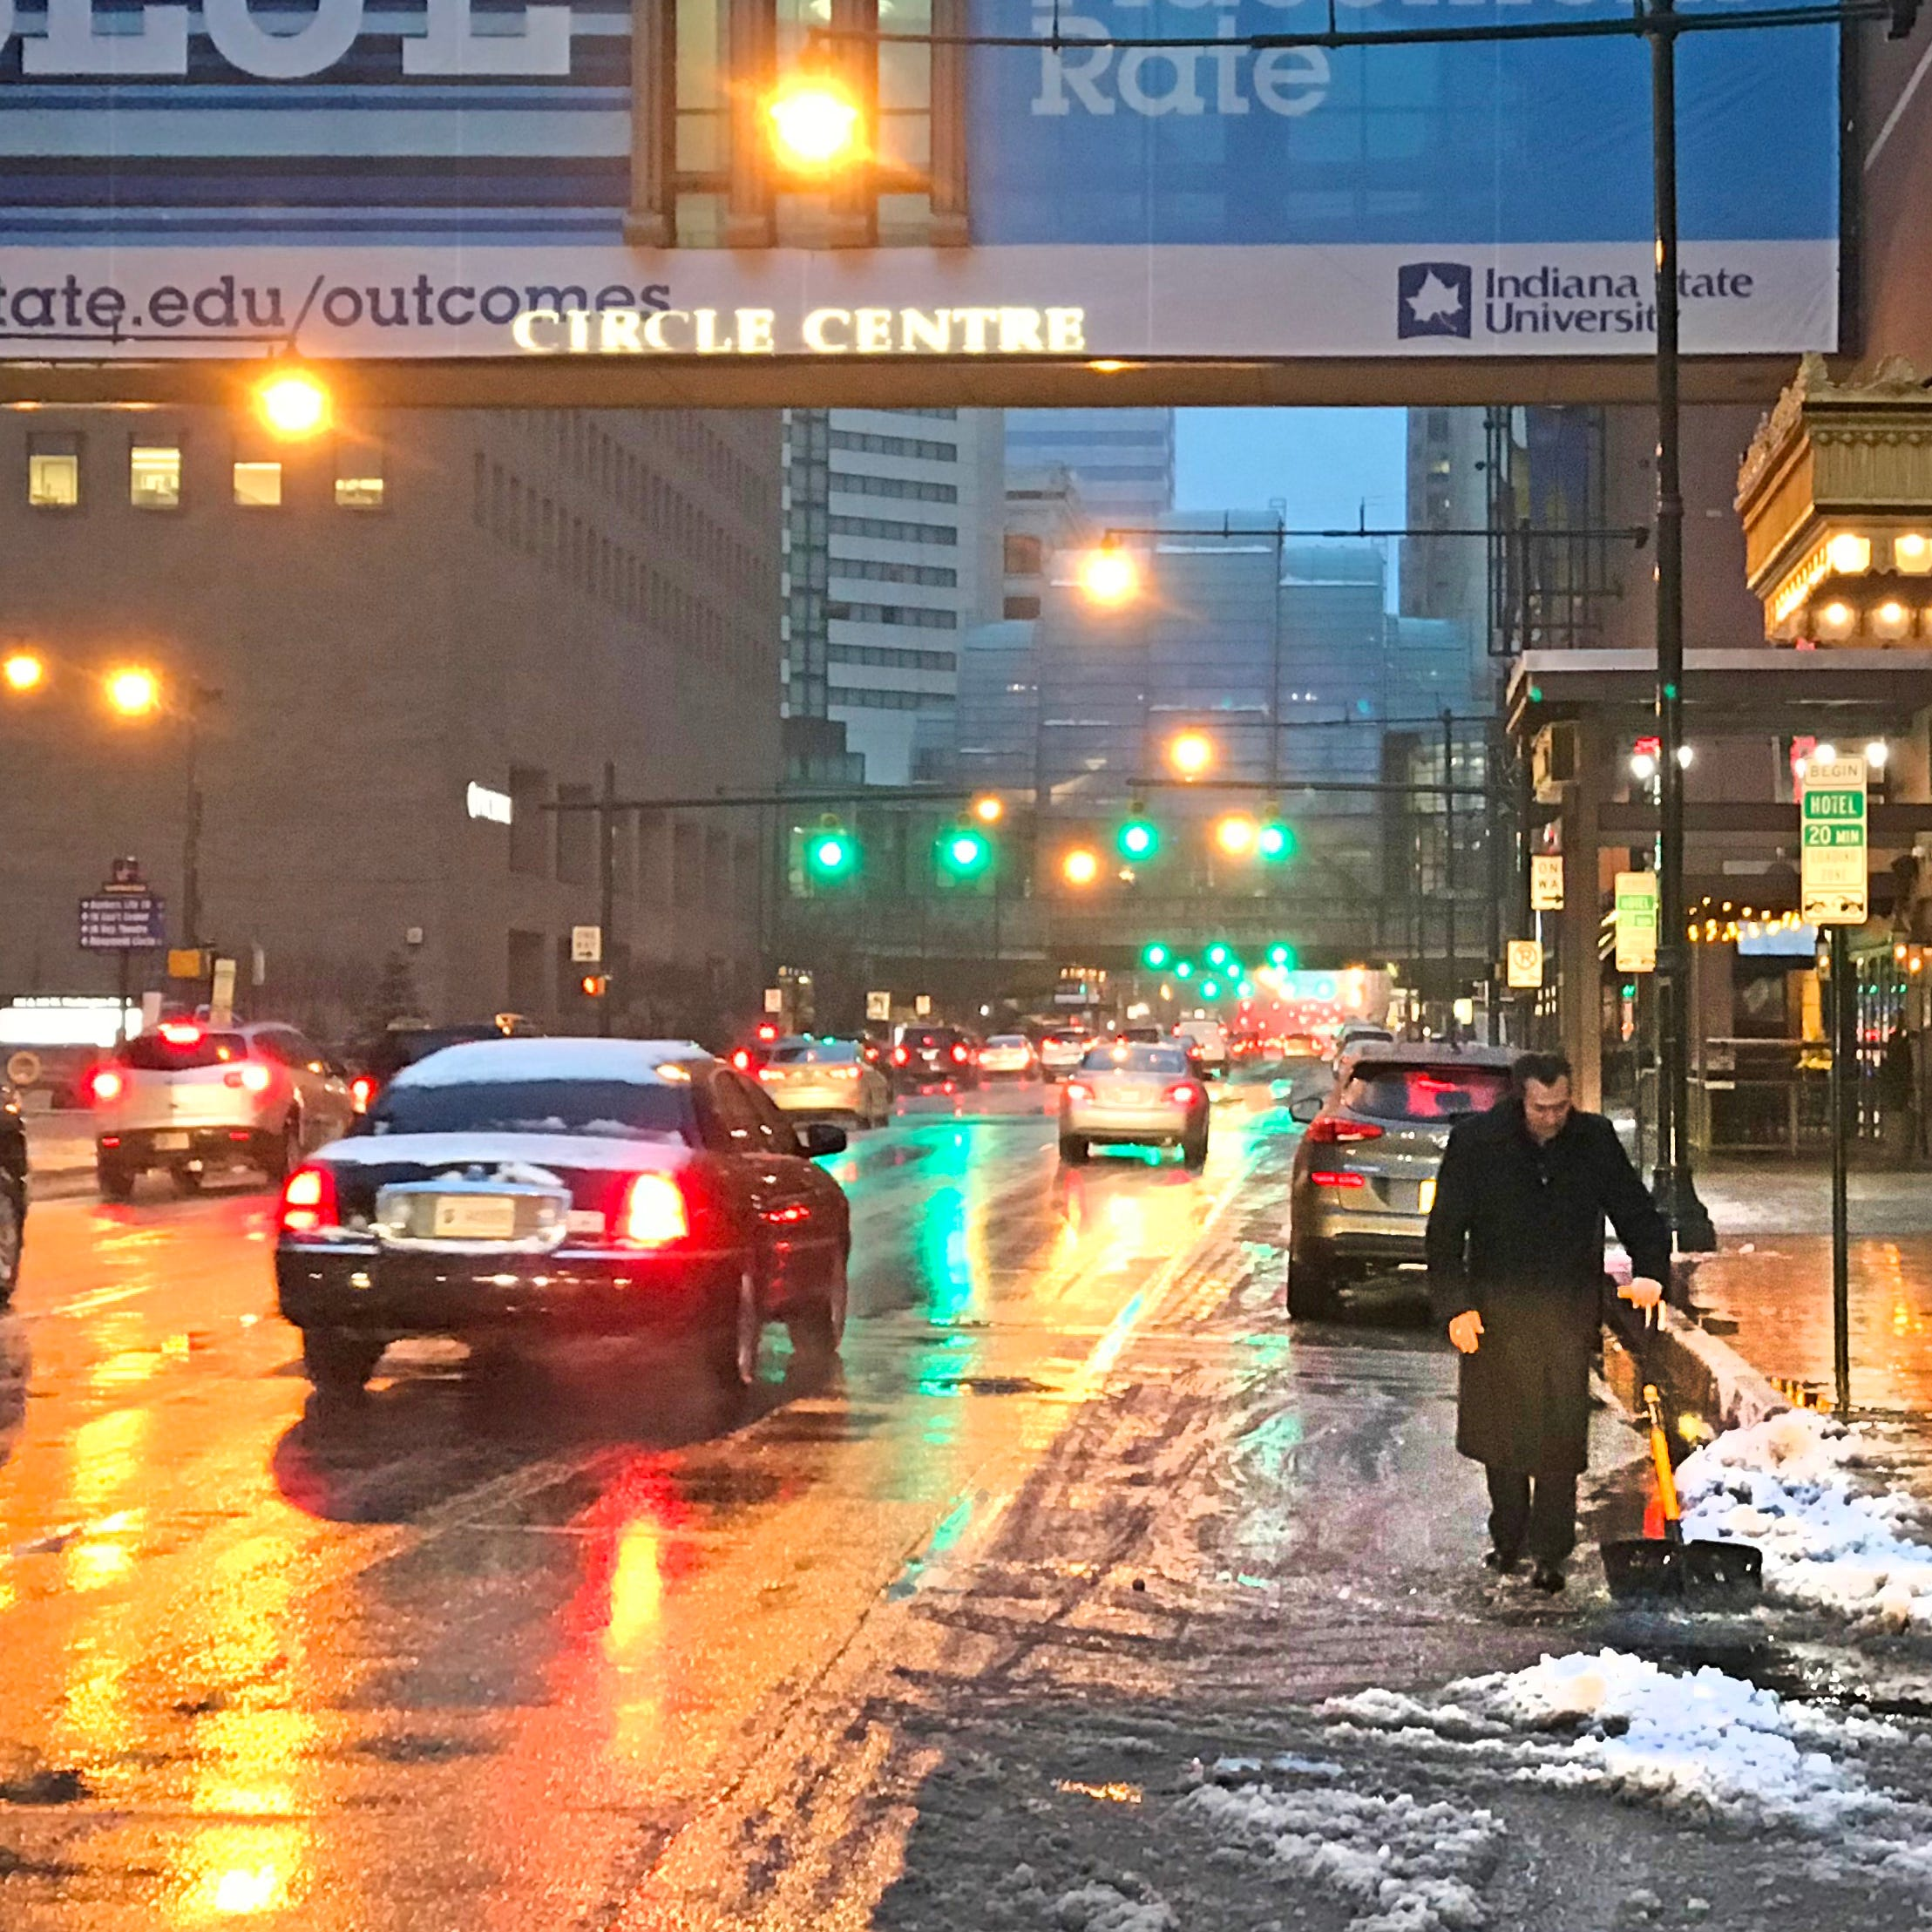 Indianapolis weather: Winter storm leaves slick roads in Central Indiana